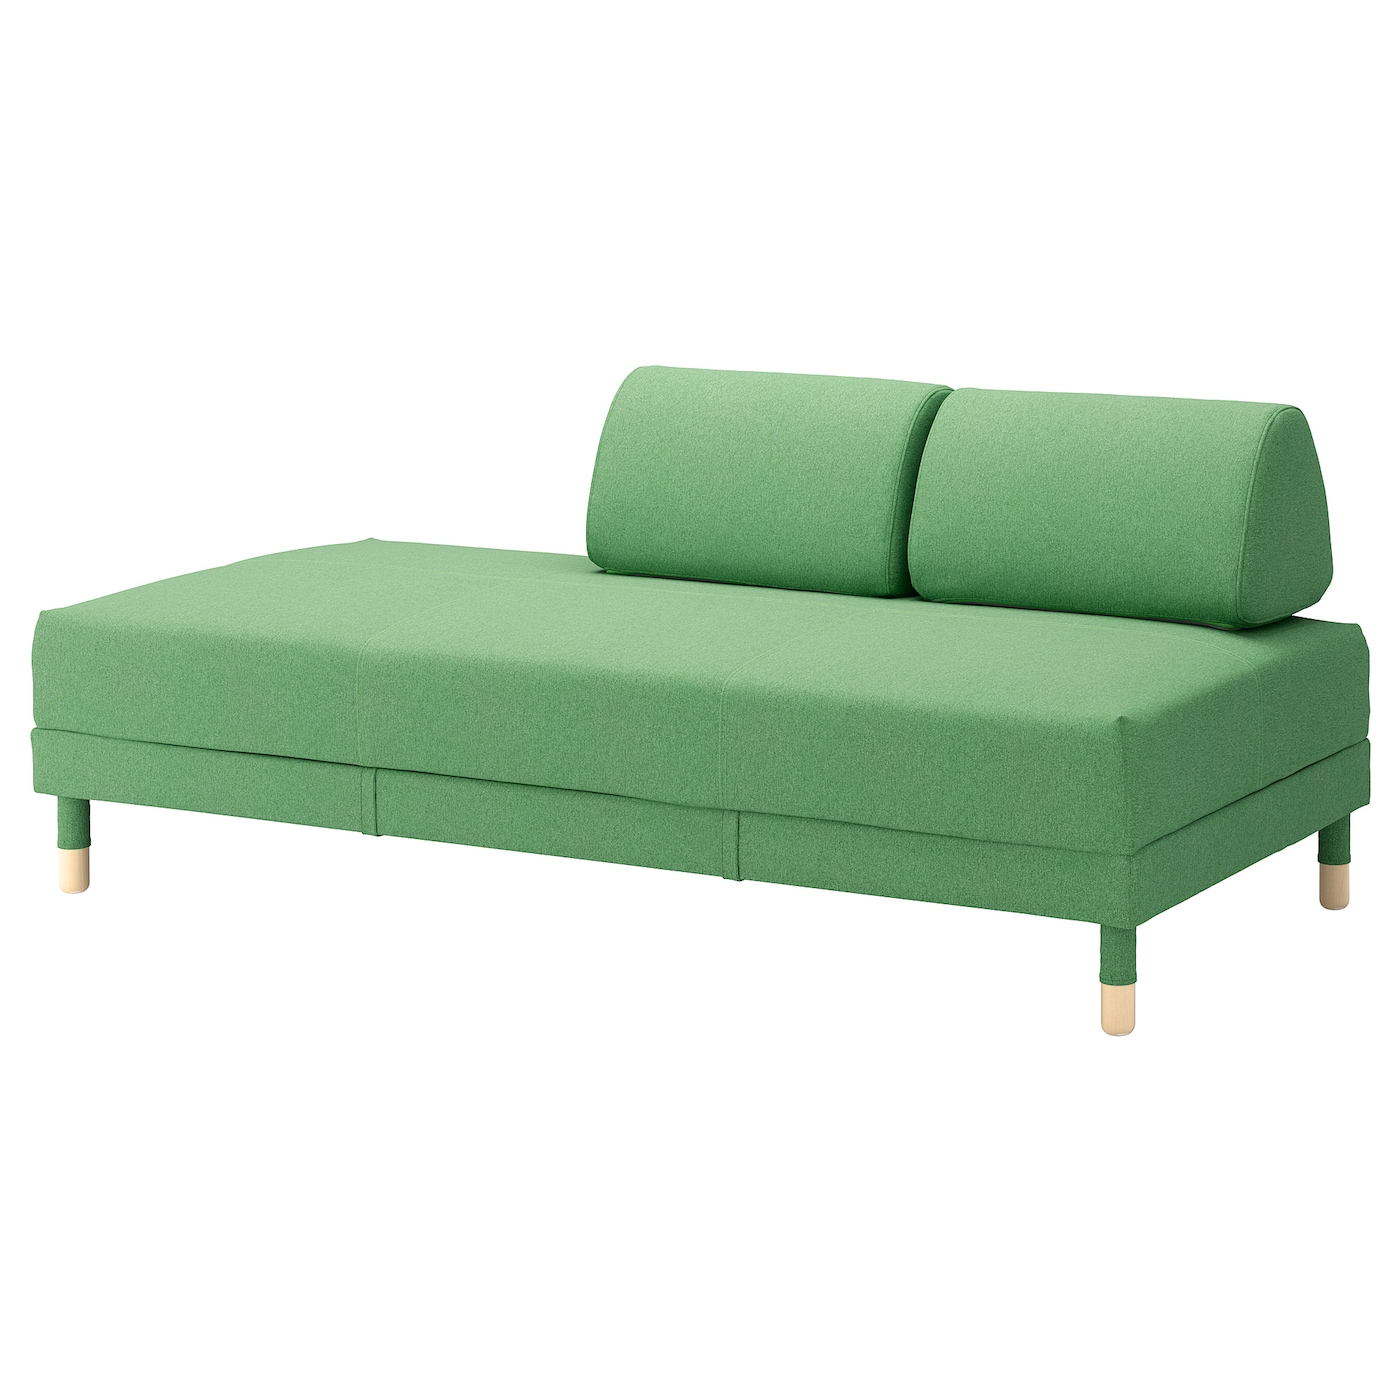 Flottebo sofa bed lysed green 90 cm ikea for 90 cm sofa bed